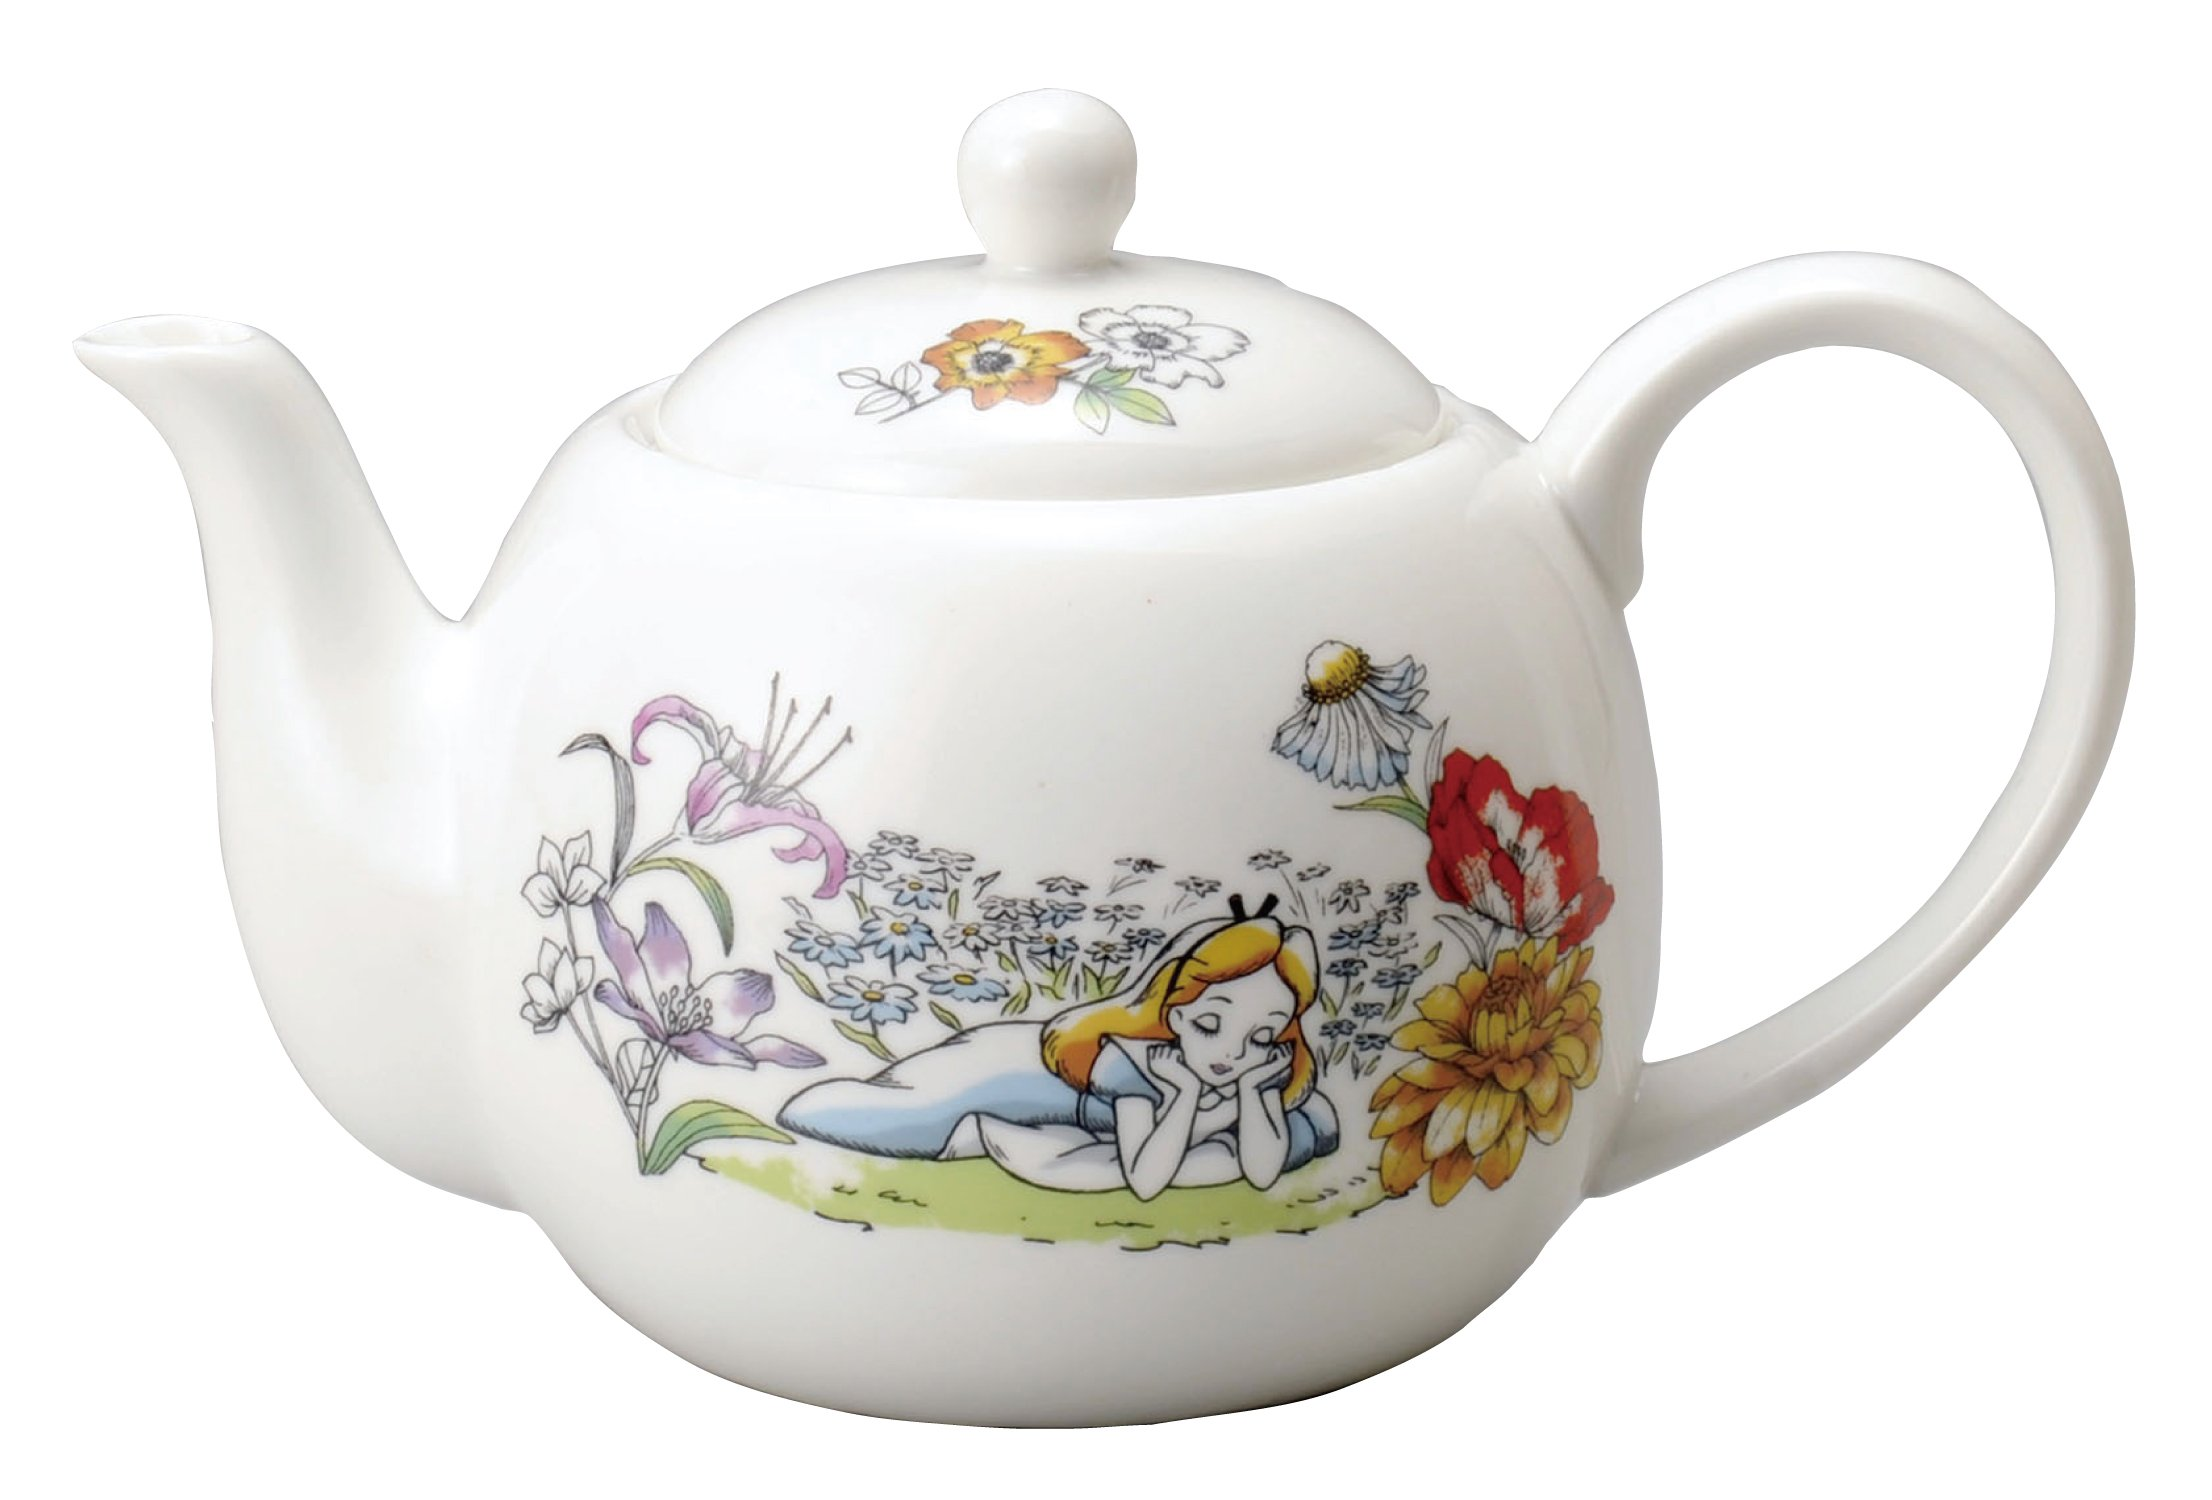 Walt Disney Alice in Wonderland Porcelain Teapot Maebata 29790(Japan import)